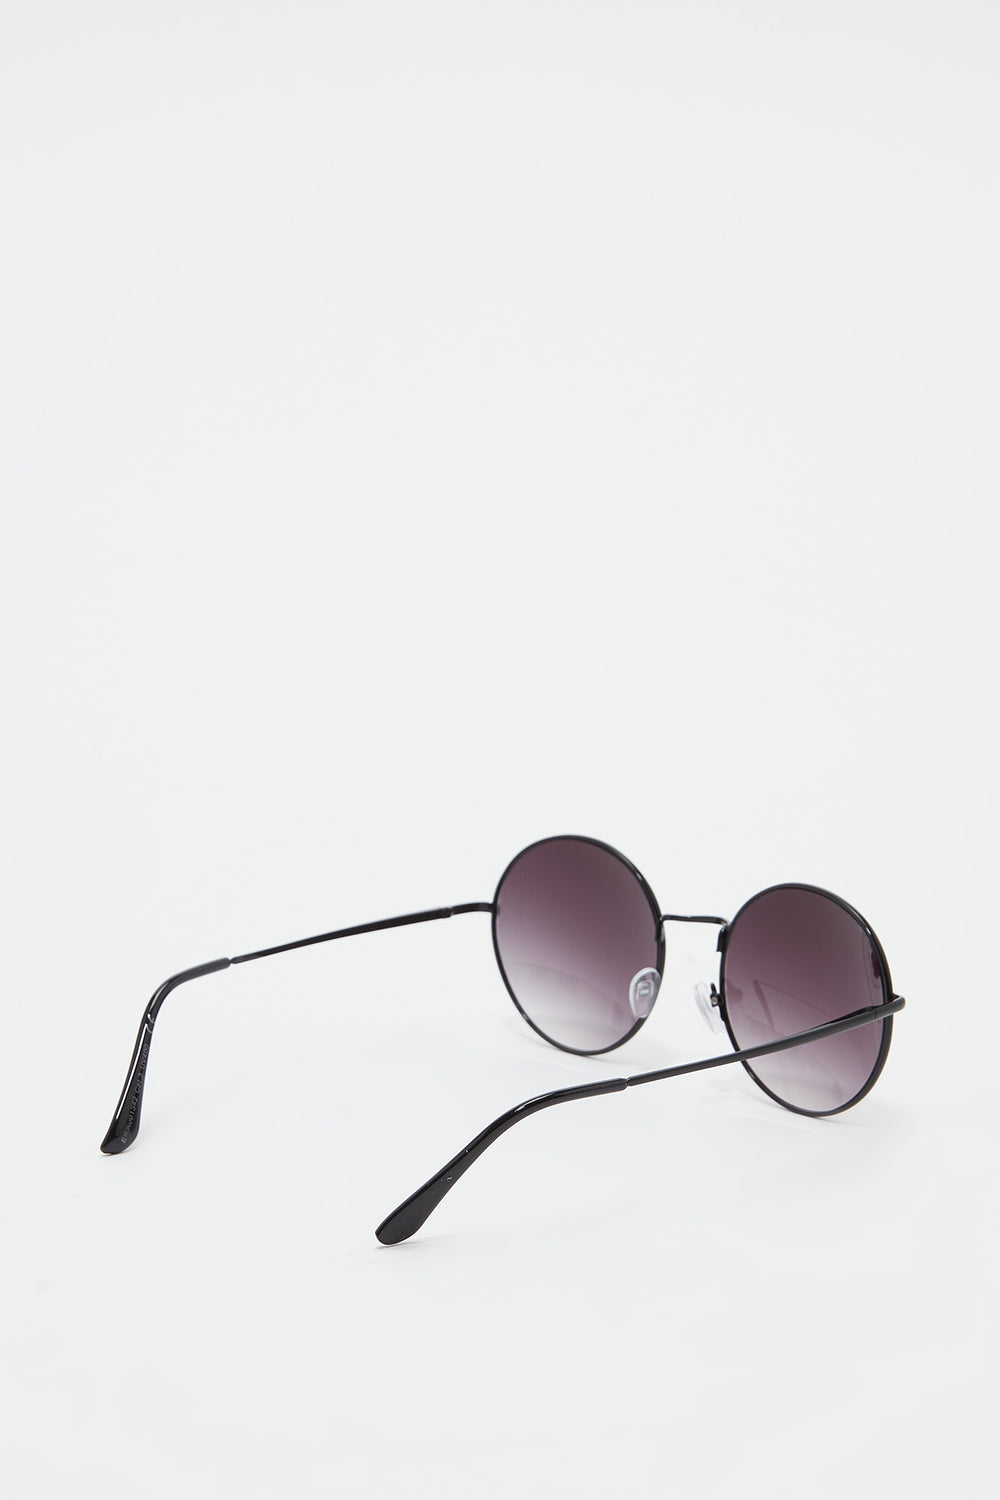 Metal Round Ombre Lens Sunglasses Black